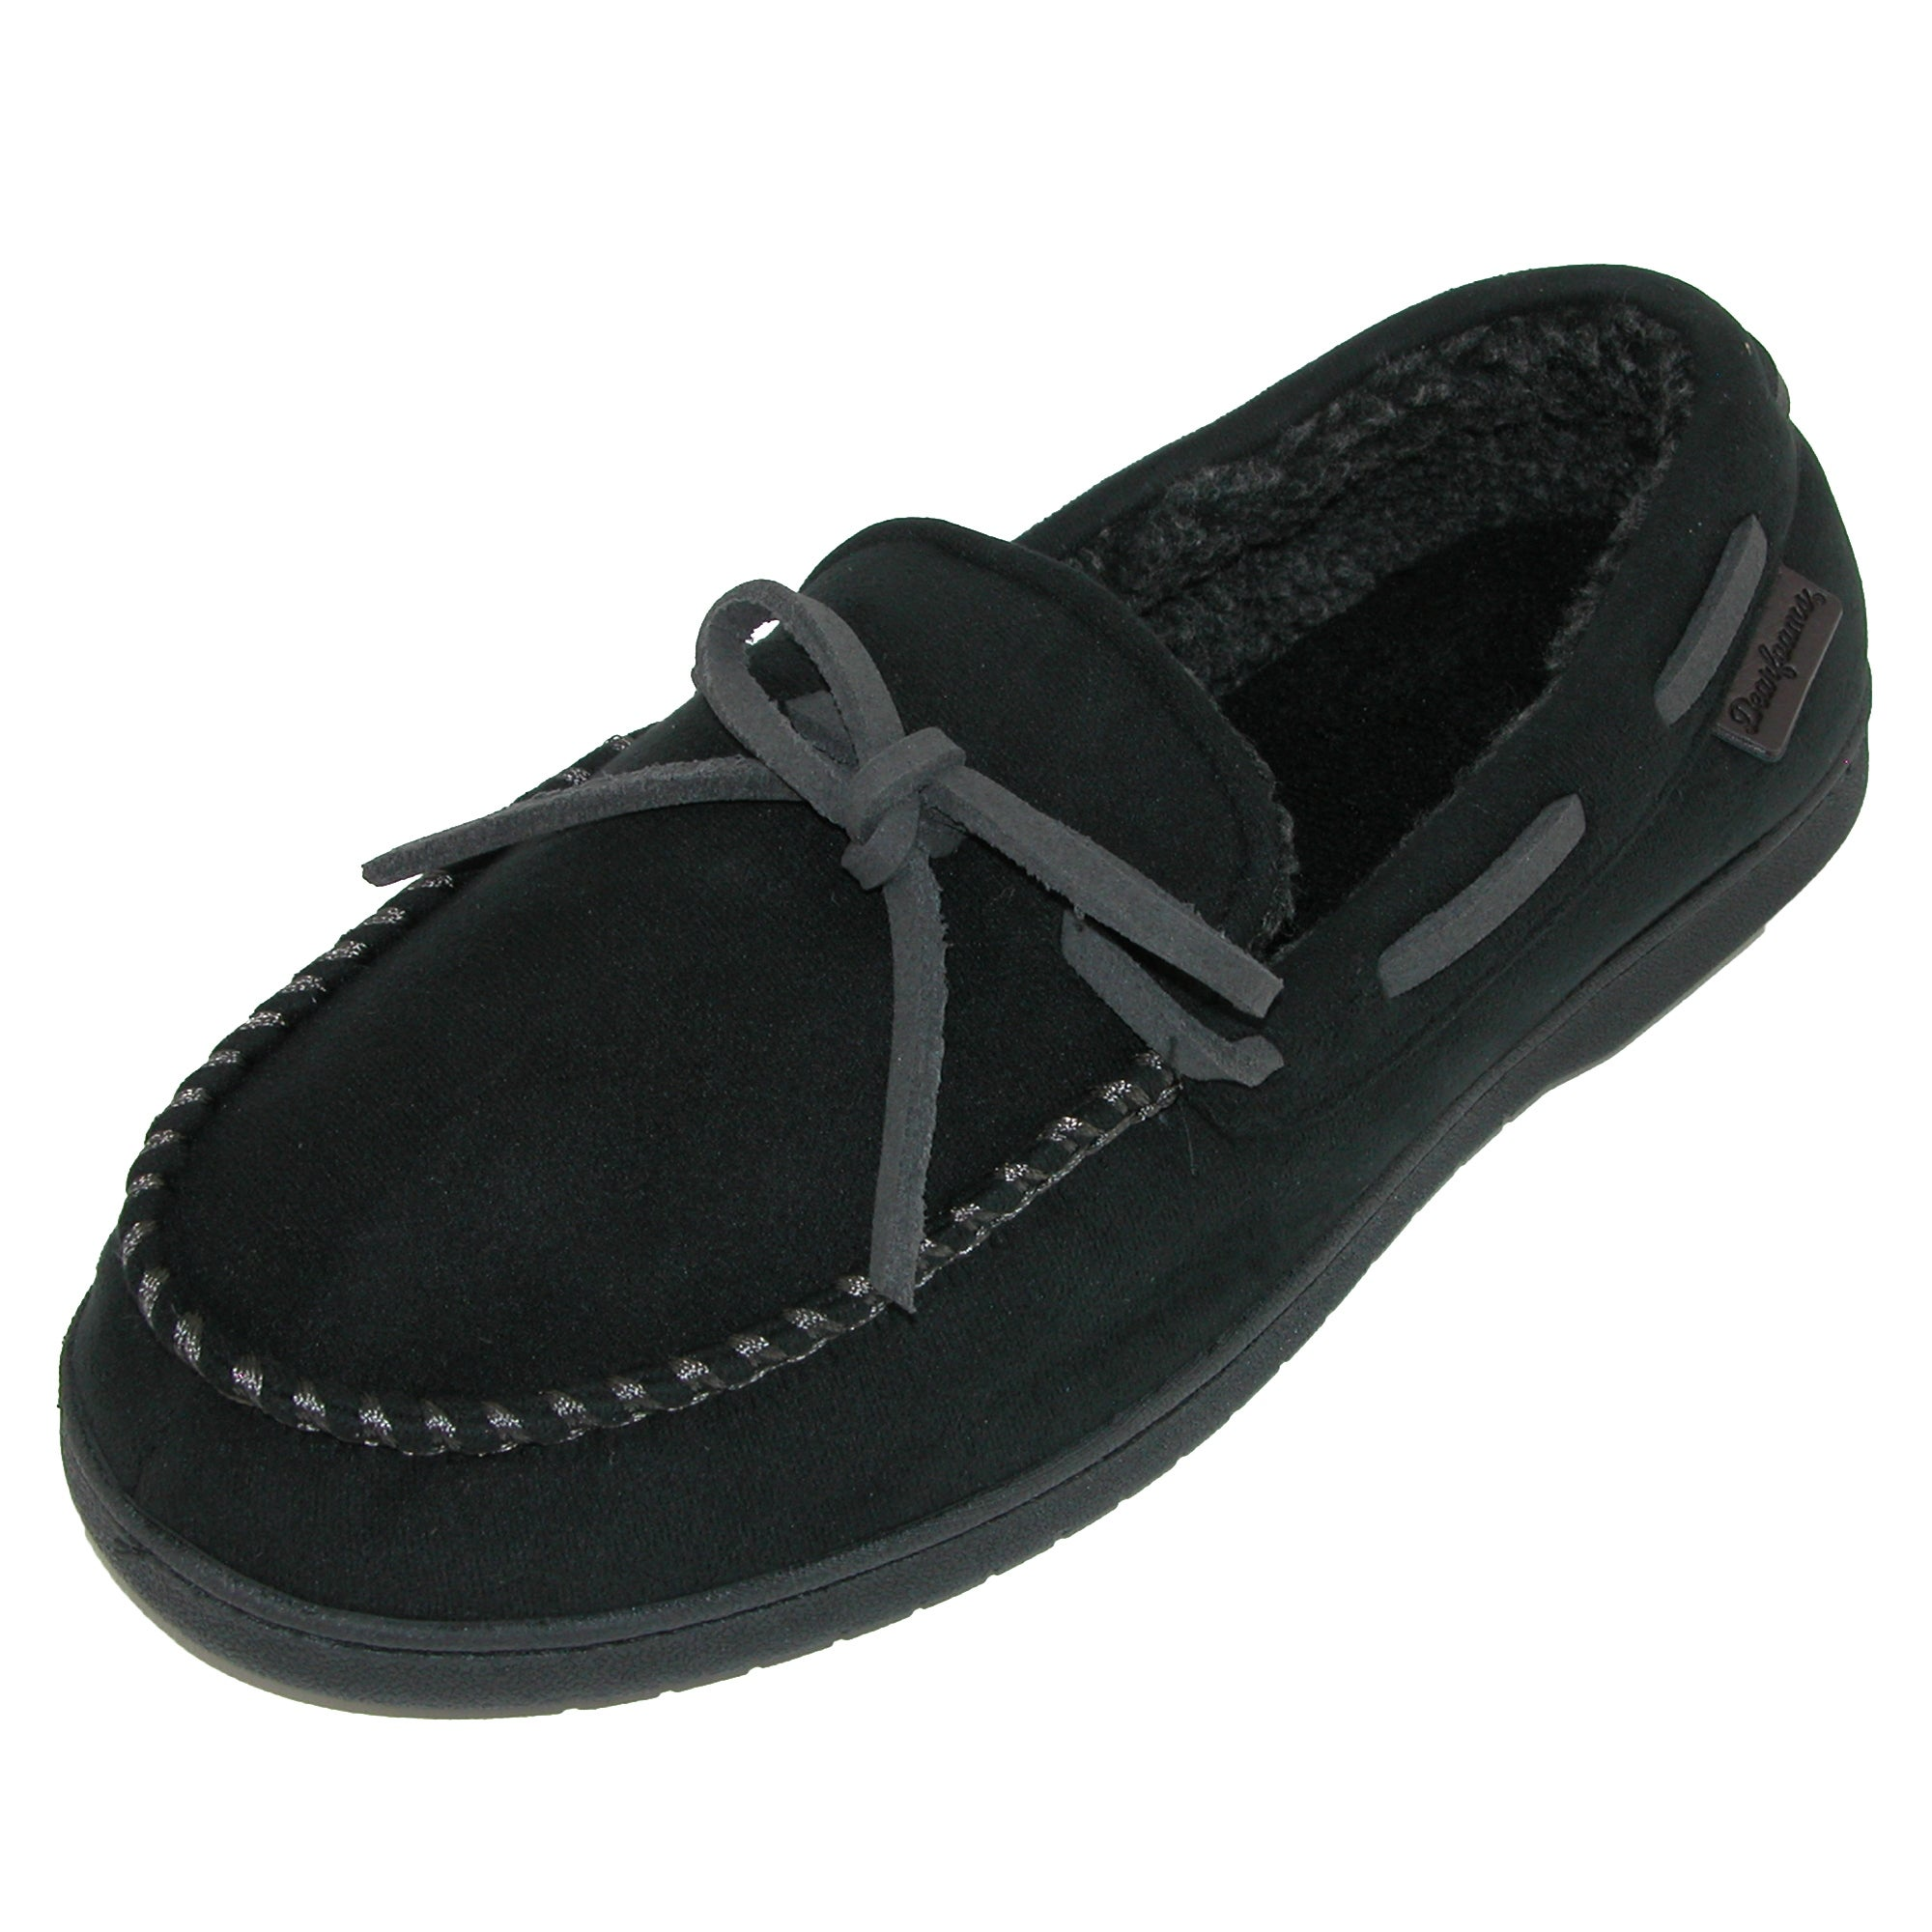 18b248381c3ed Shop Dearfoams Men's Microfiber Suede Moccasin Slipper with Whipstitch -  Ships To Canada - Overstock - 18158289